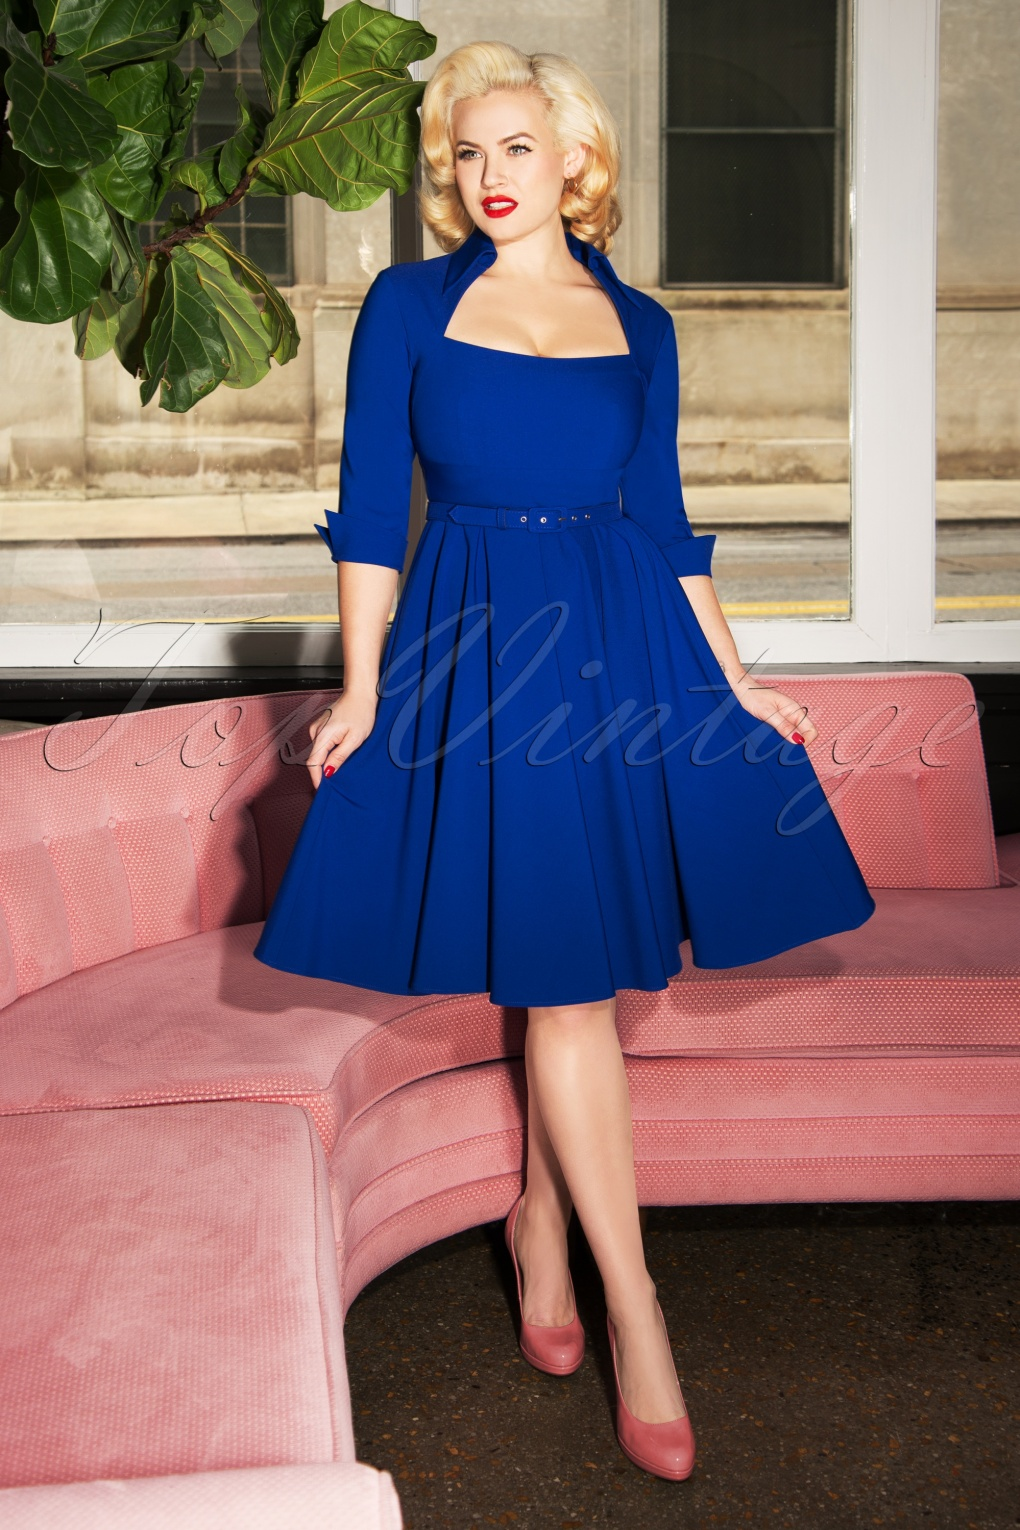 Authentic Natural 1950s Makeup History and Tutorial 50s Lorelei Swing Dress in Royal Blue £121.83 AT vintagedancer.com